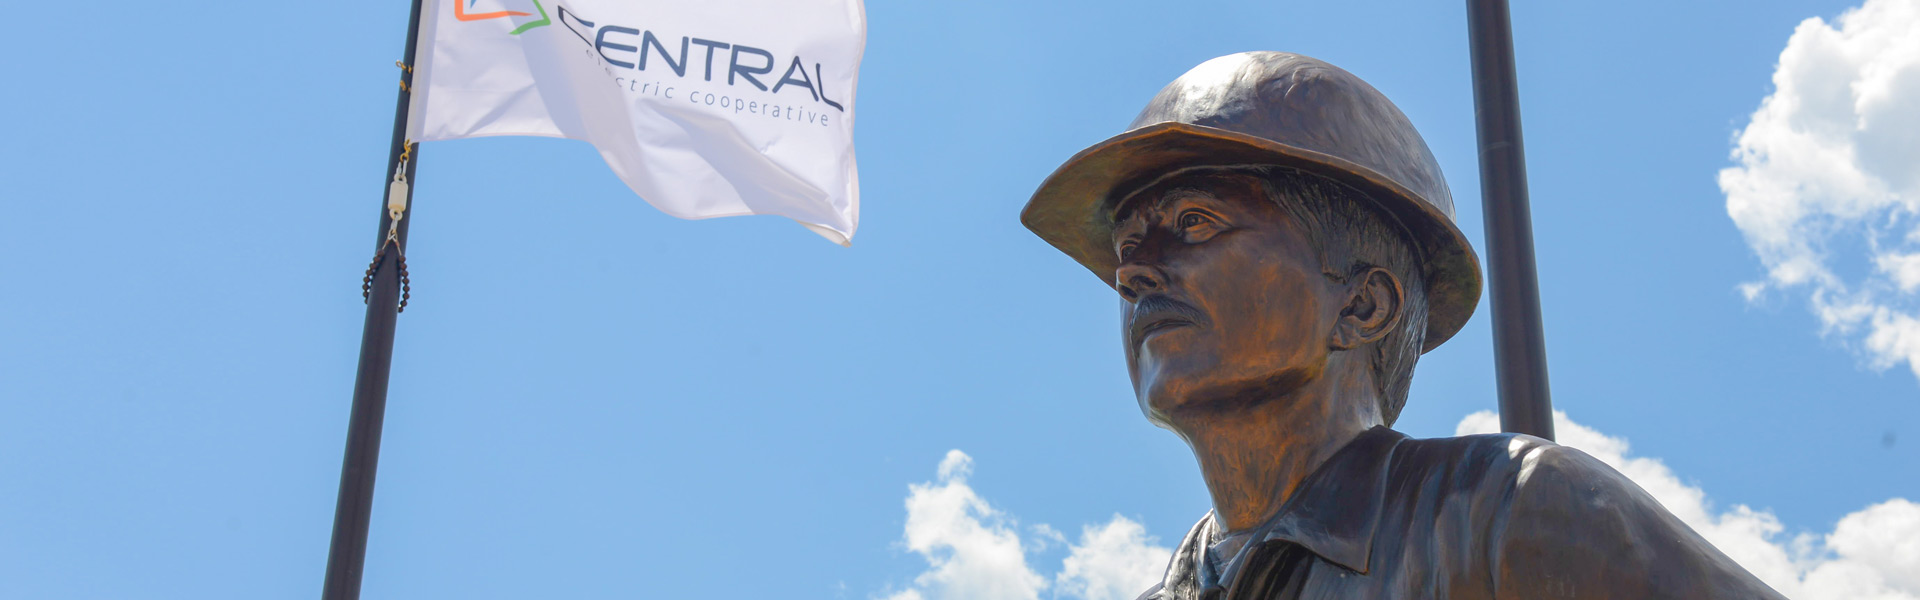 Good Neighbor Lineman statue located at Centrals headquarters